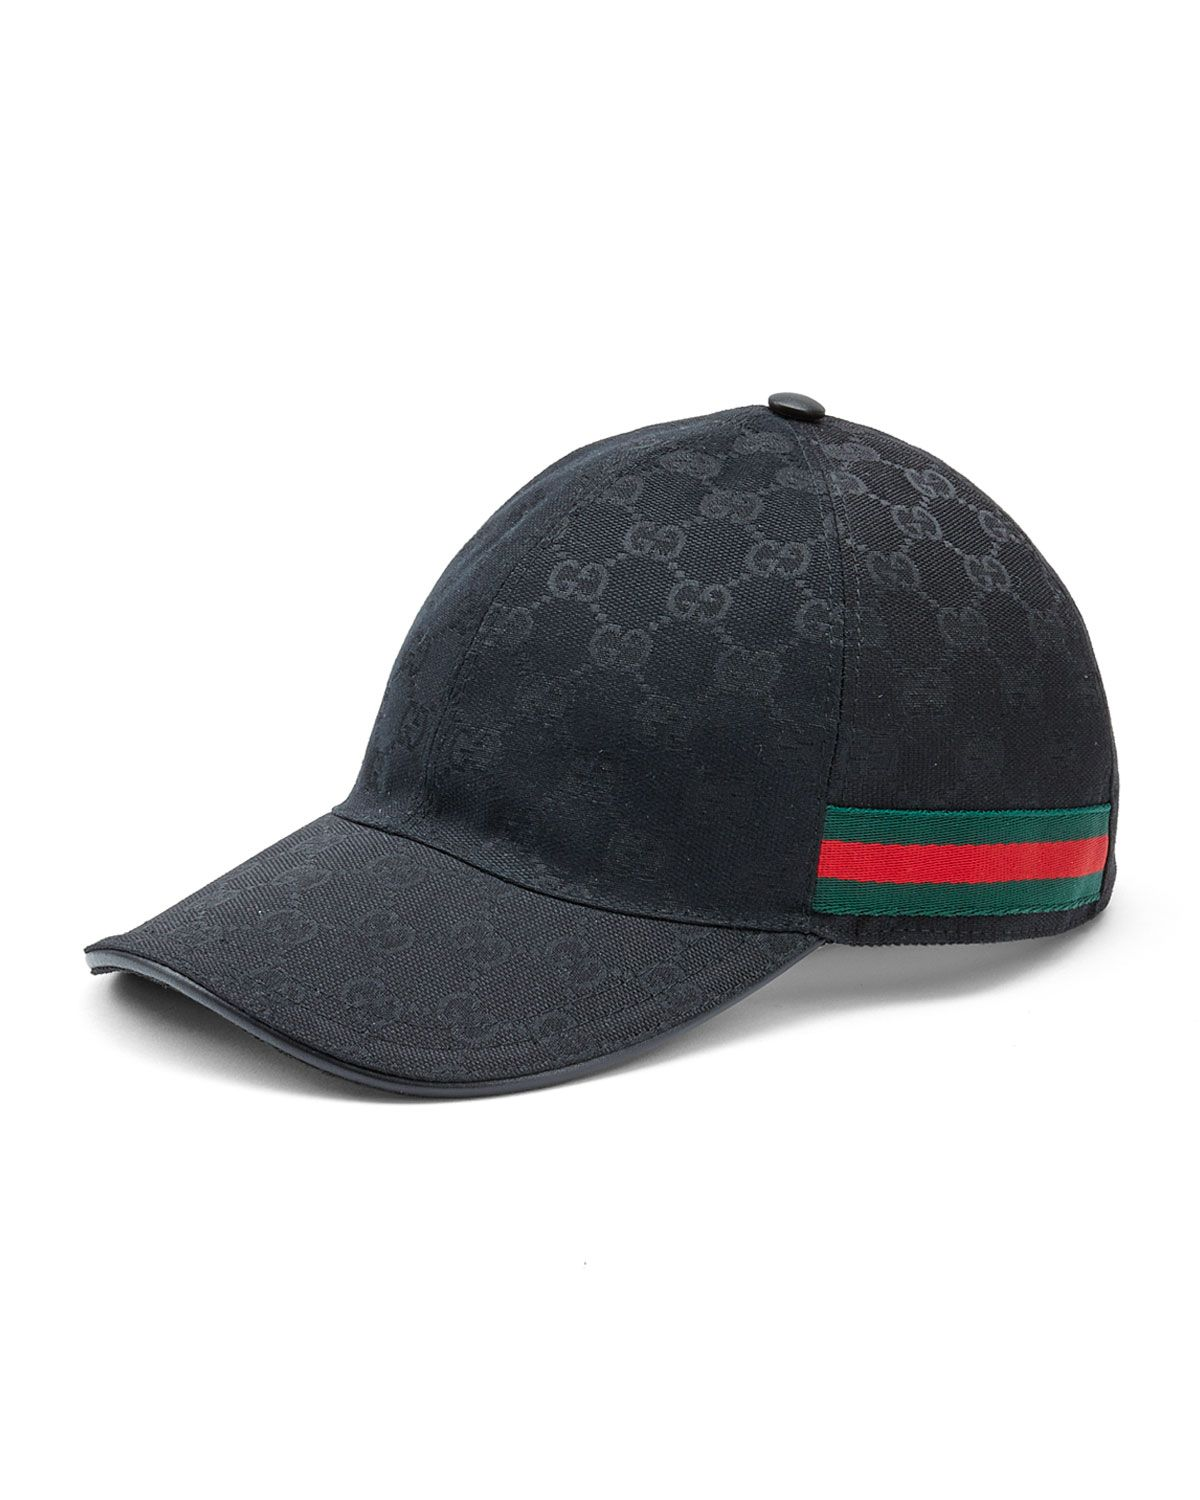 5af34053f74 Canvas Baseball Hat